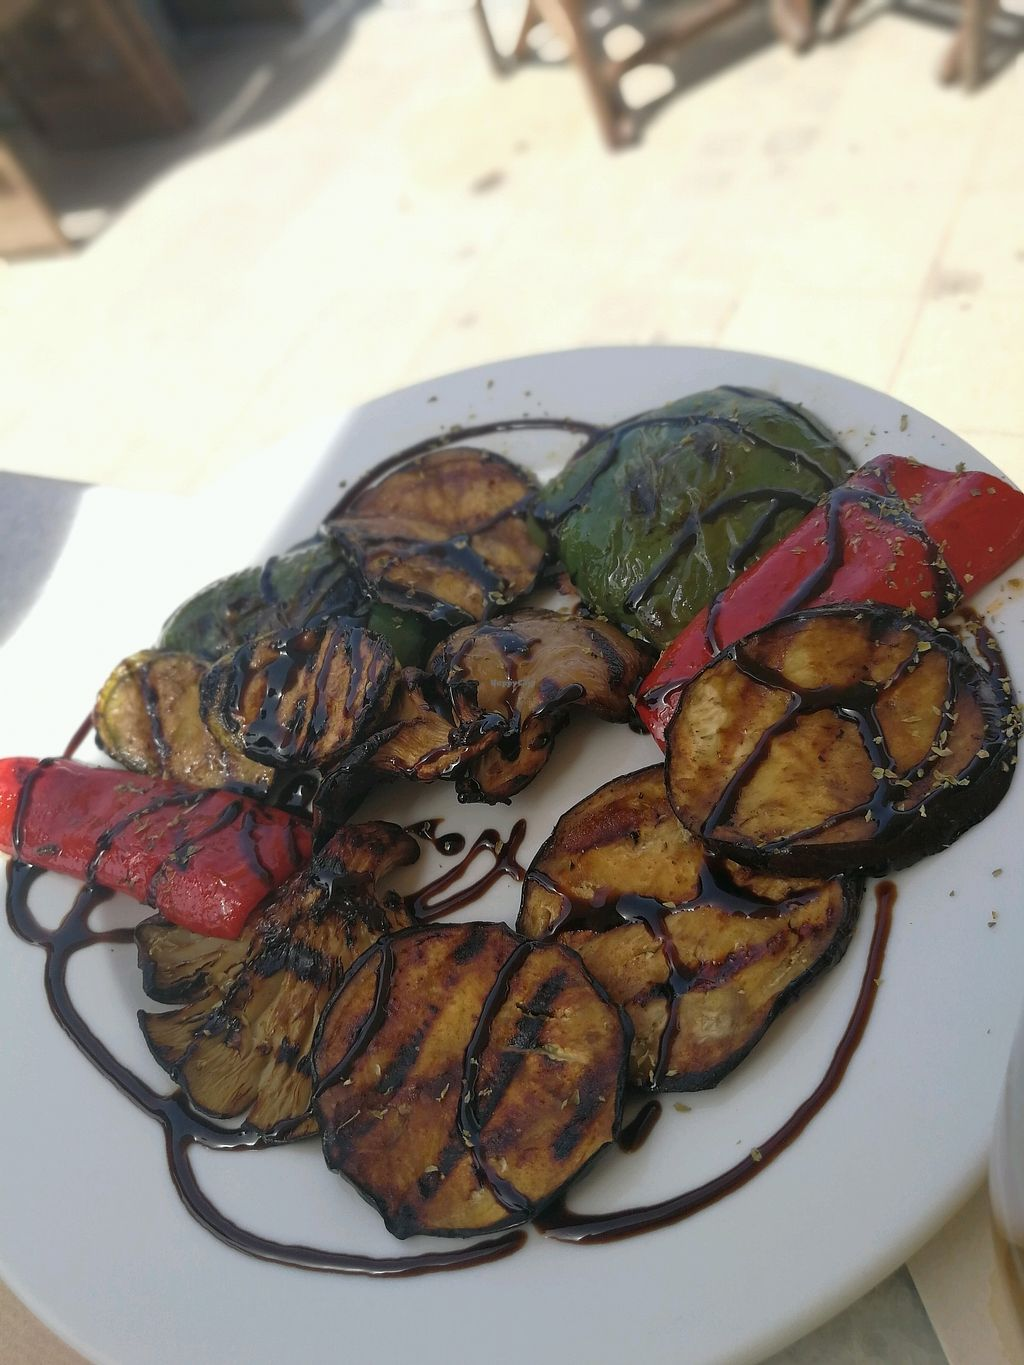 "Photo of V+ S Corner  by <a href=""/members/profile/JohnVanillah"">JohnVanillah</a> <br/>grilled Mediterranean vegetables <br/> April 12, 2018  - <a href='/contact/abuse/image/106078/384596'>Report</a>"